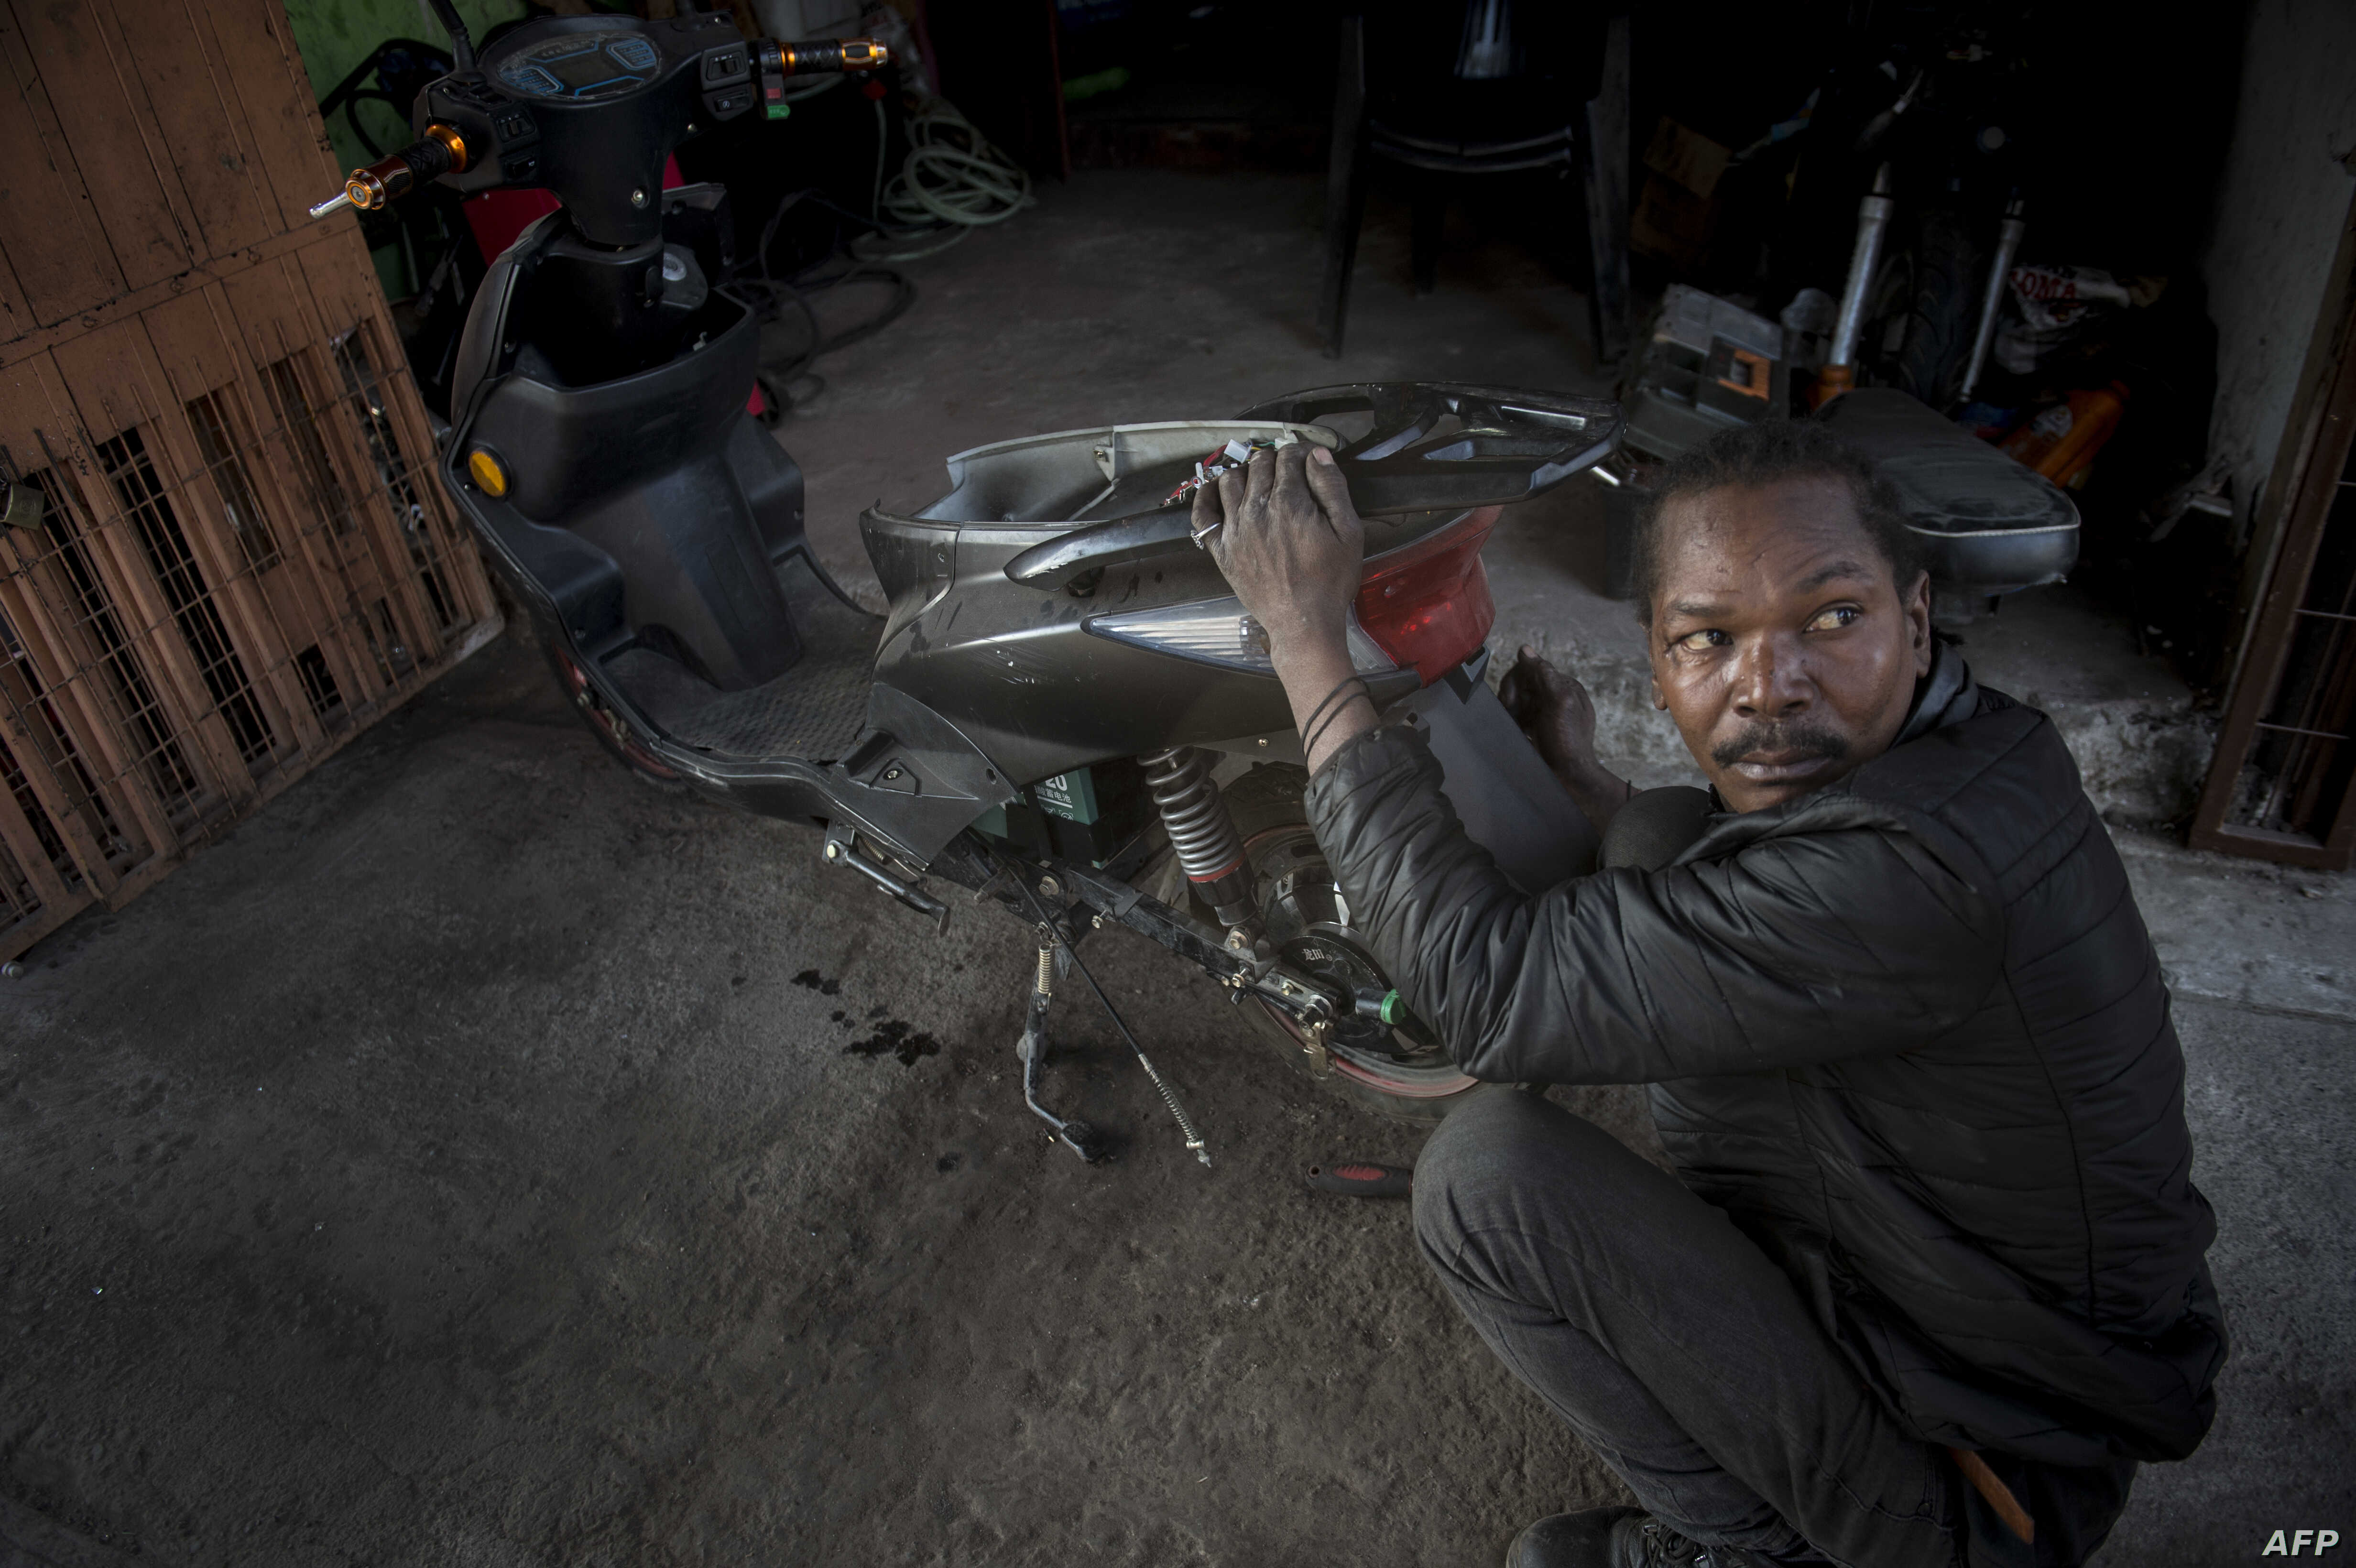 A Haitian mechanic works on a motorcycle at a workshop in the commune of Quilicura in Santiago, on April 26, 2018.